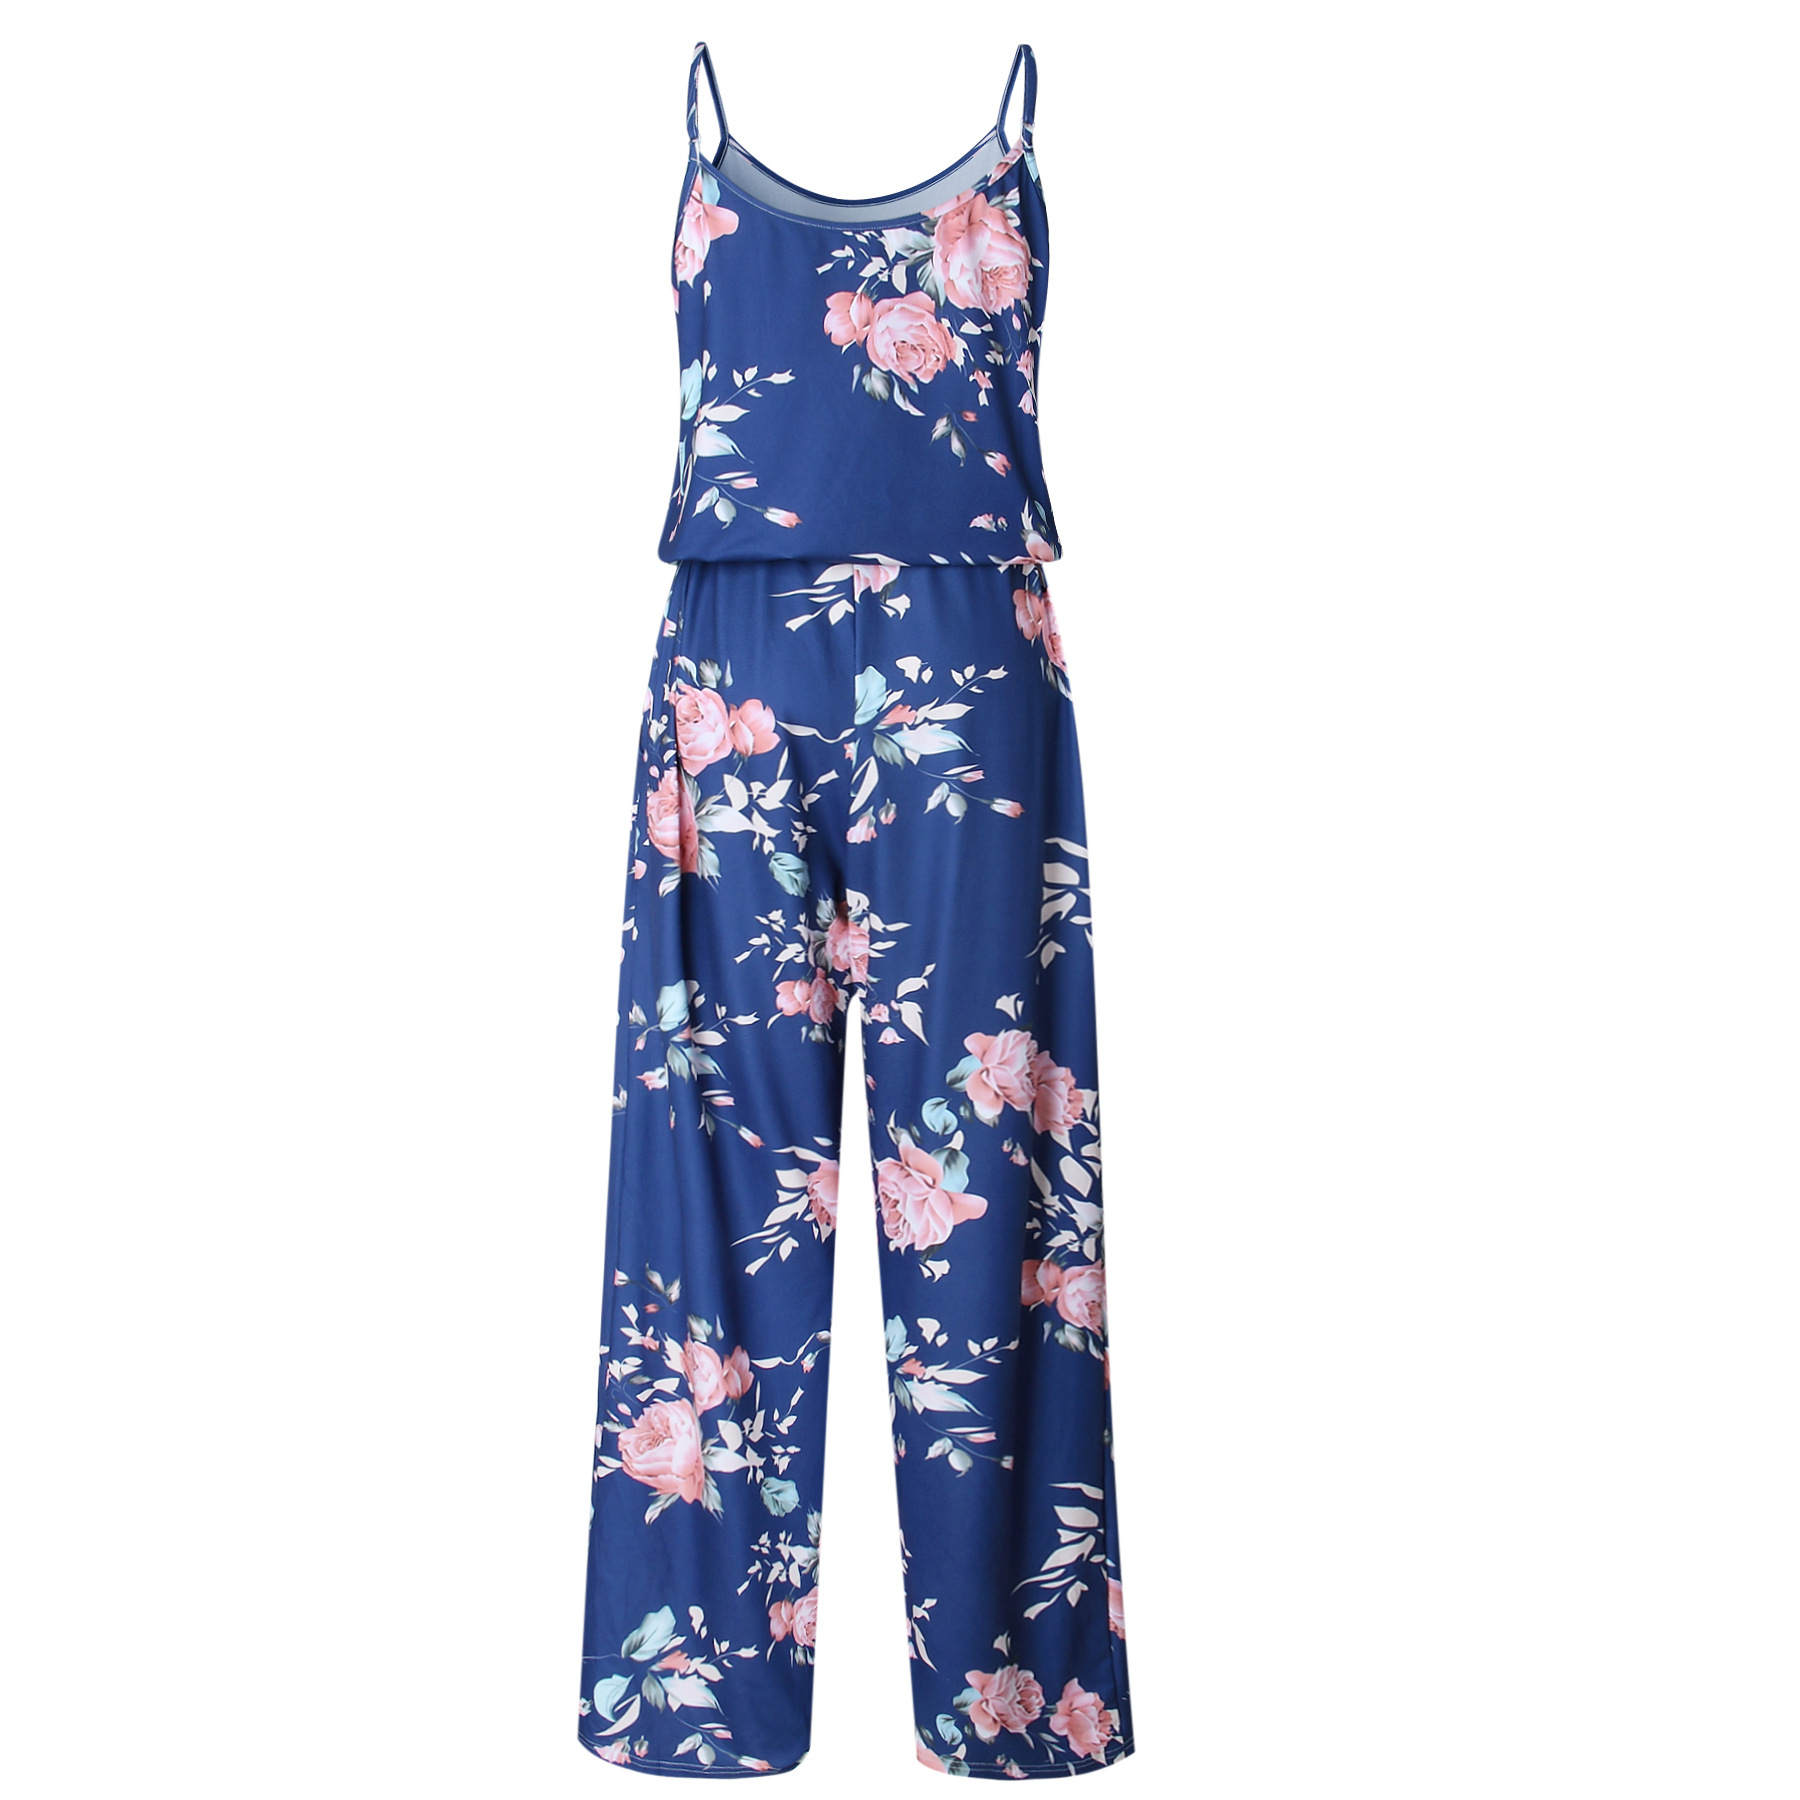 Spaghetti Strap Jumpsuit Women 2018 Summer Long Pants Floral Print Rompers Beach Casual Jumpsuits Sleeveless Sashes Playsuits 23